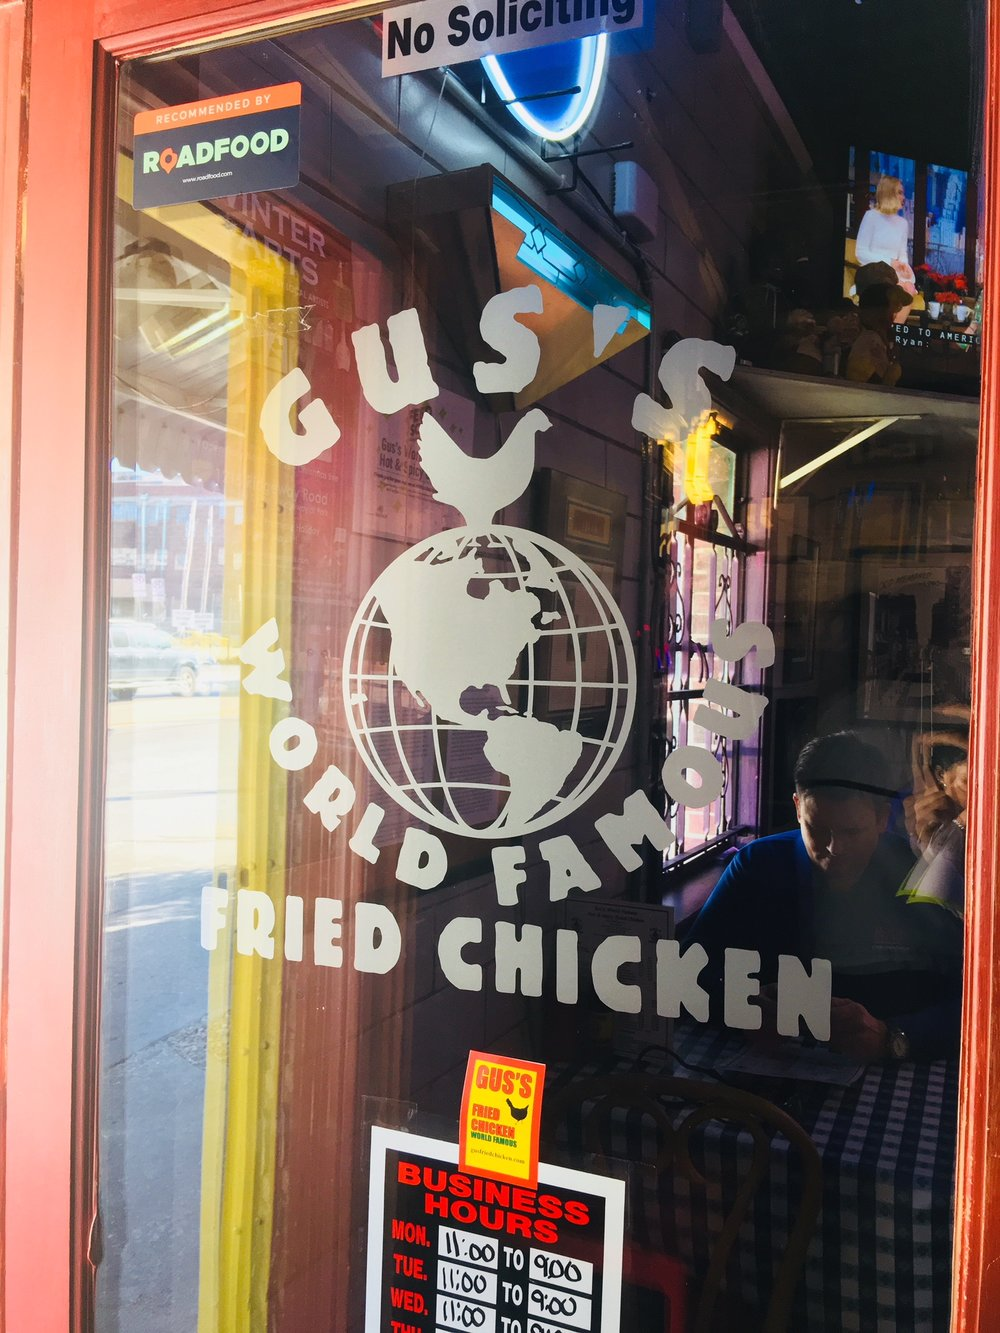 Gus's World Famous Chicken Etched Glass